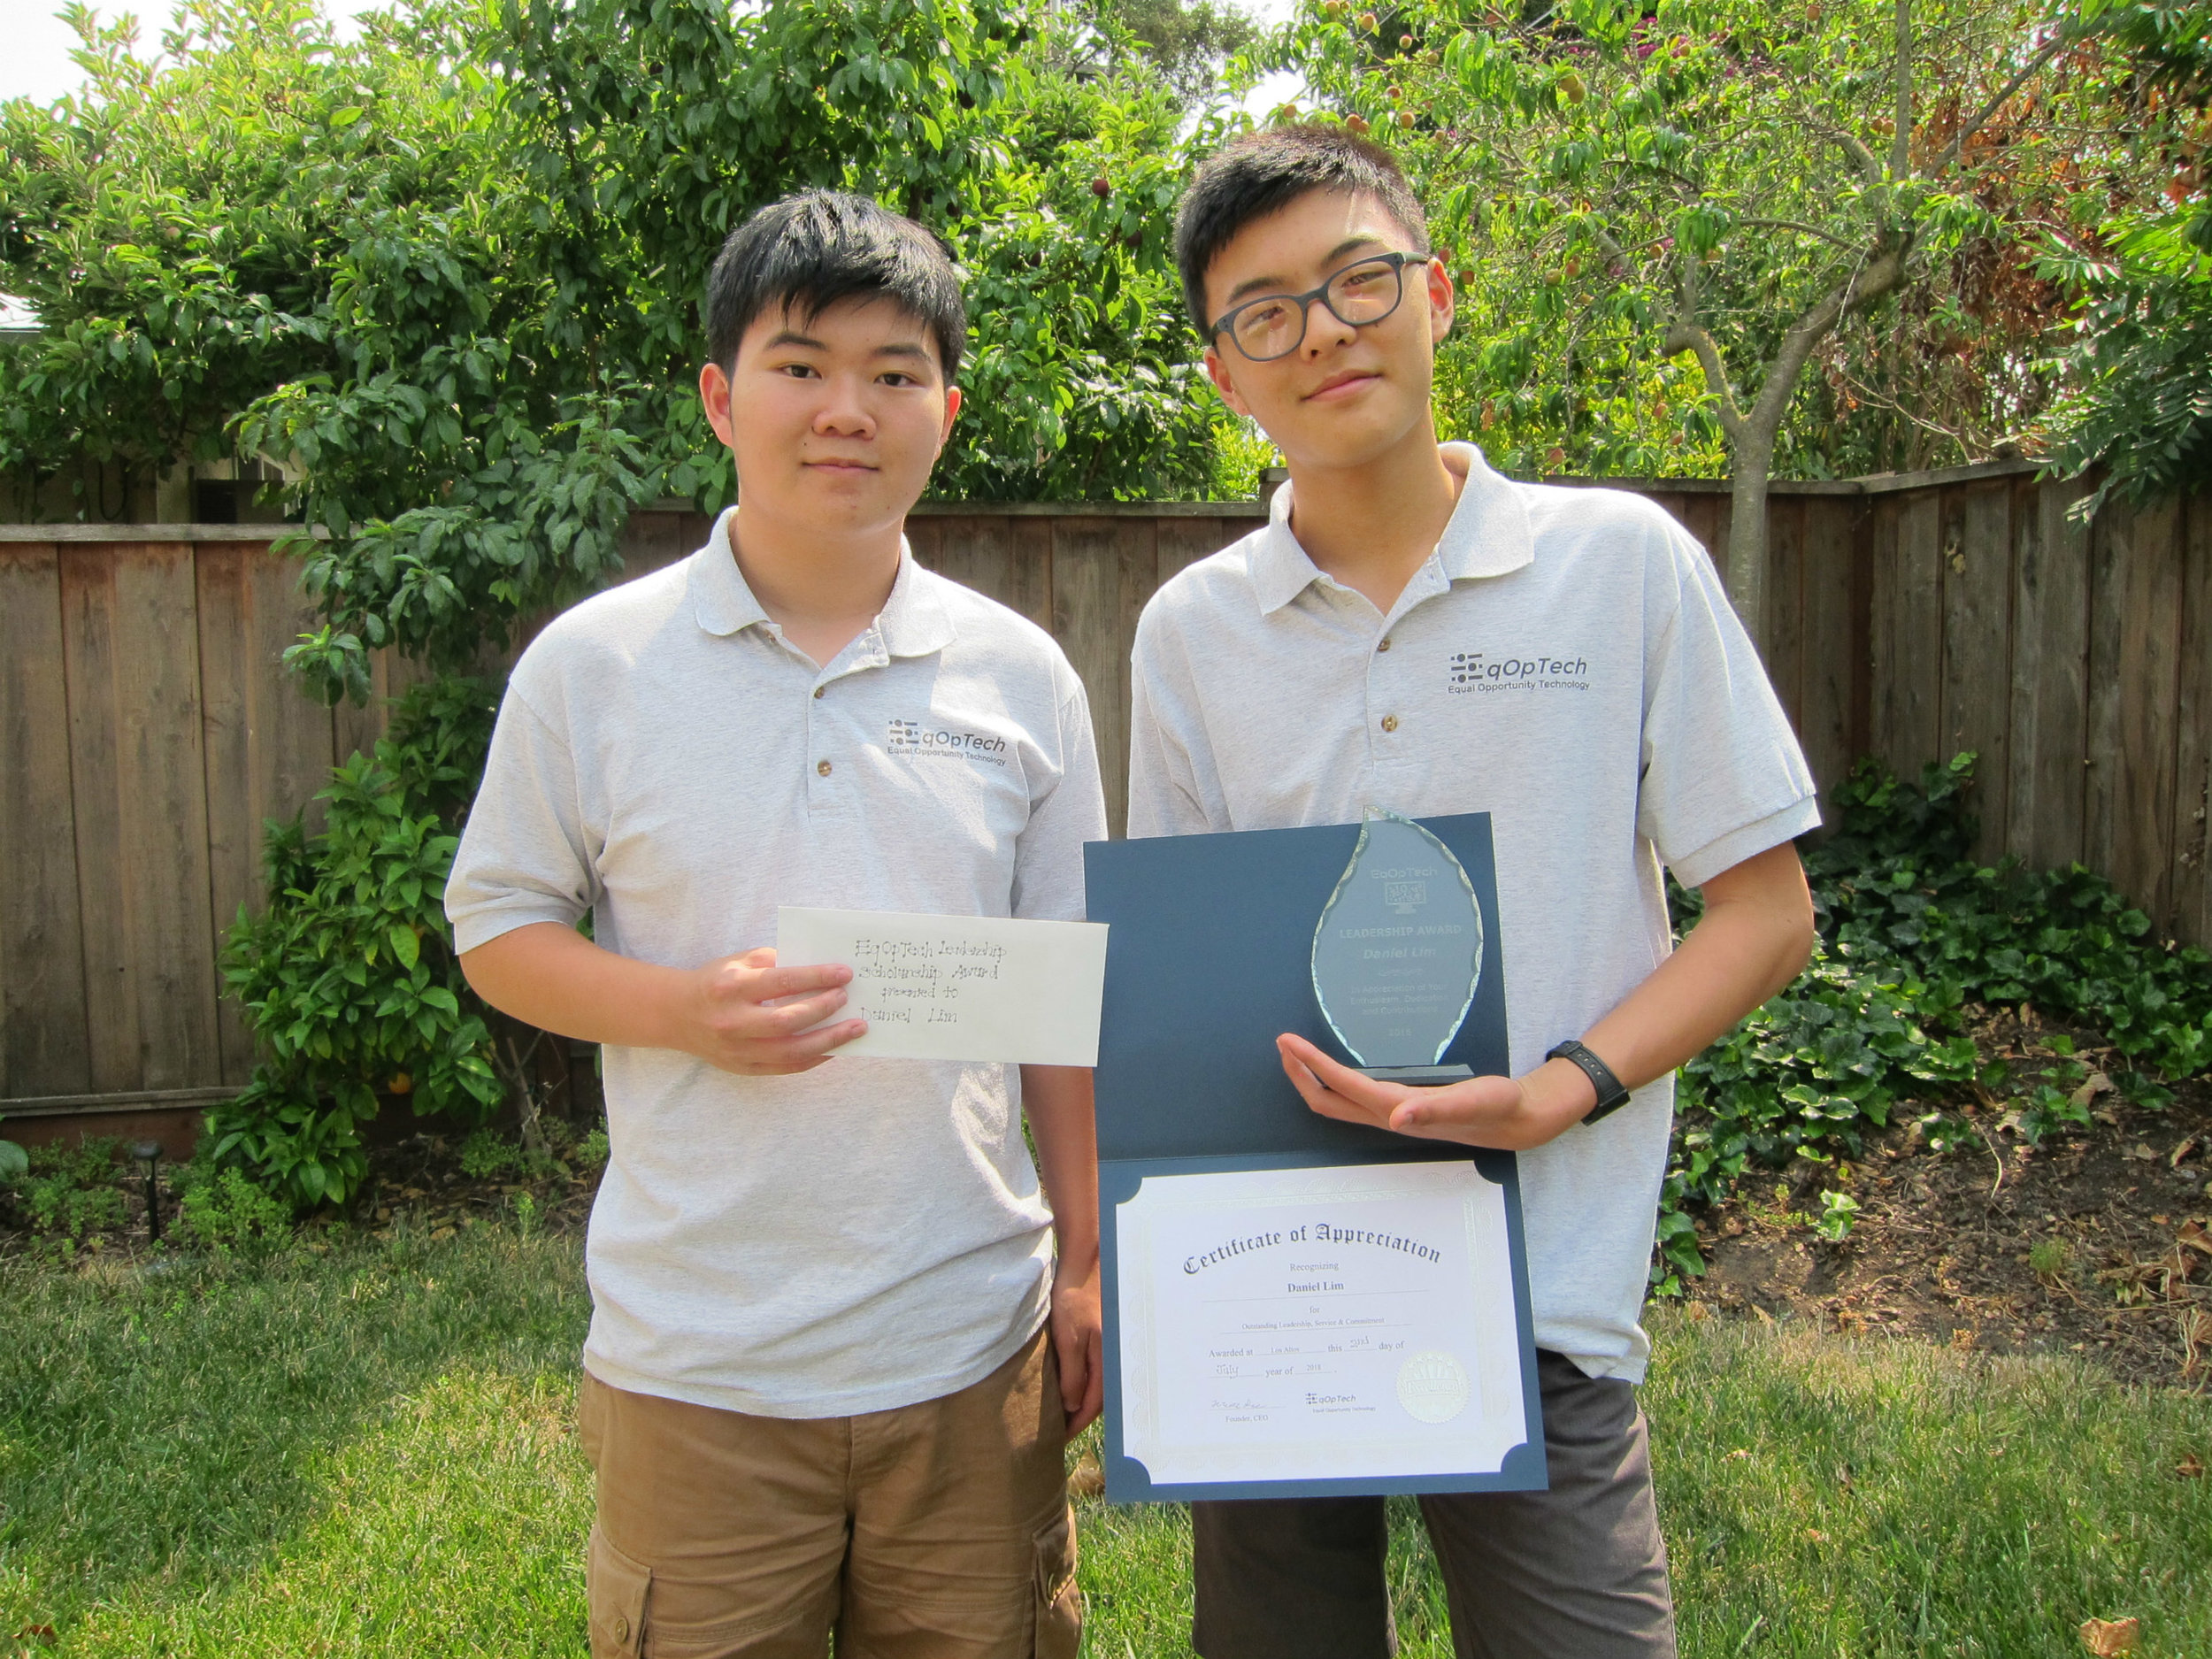 Daniel Lim (right), Terence Lee